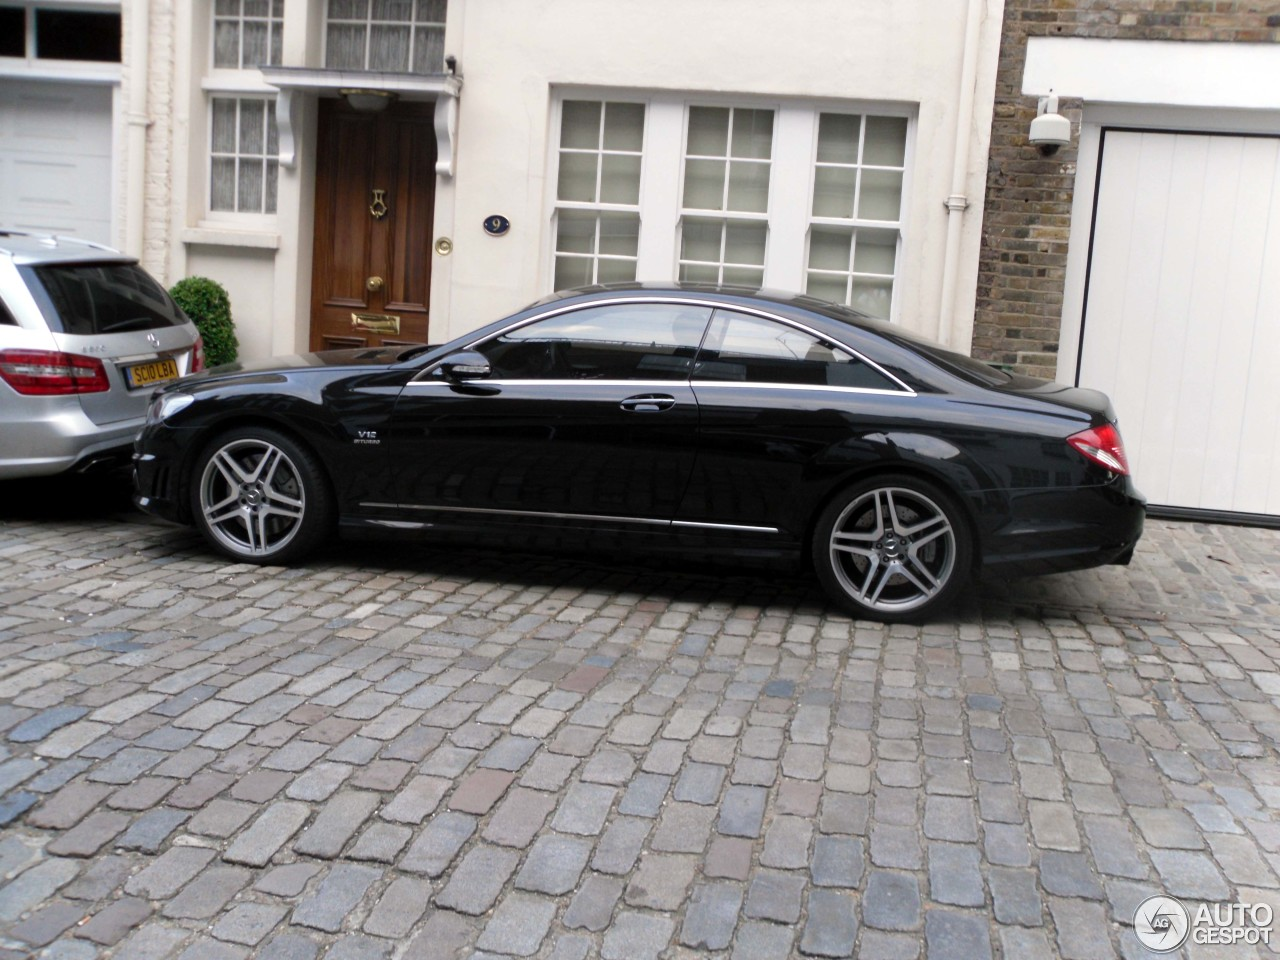 Mercedes benz cl 65 amg c216 22 july 2013 autogespot for Mercedes benz cl 65 amg